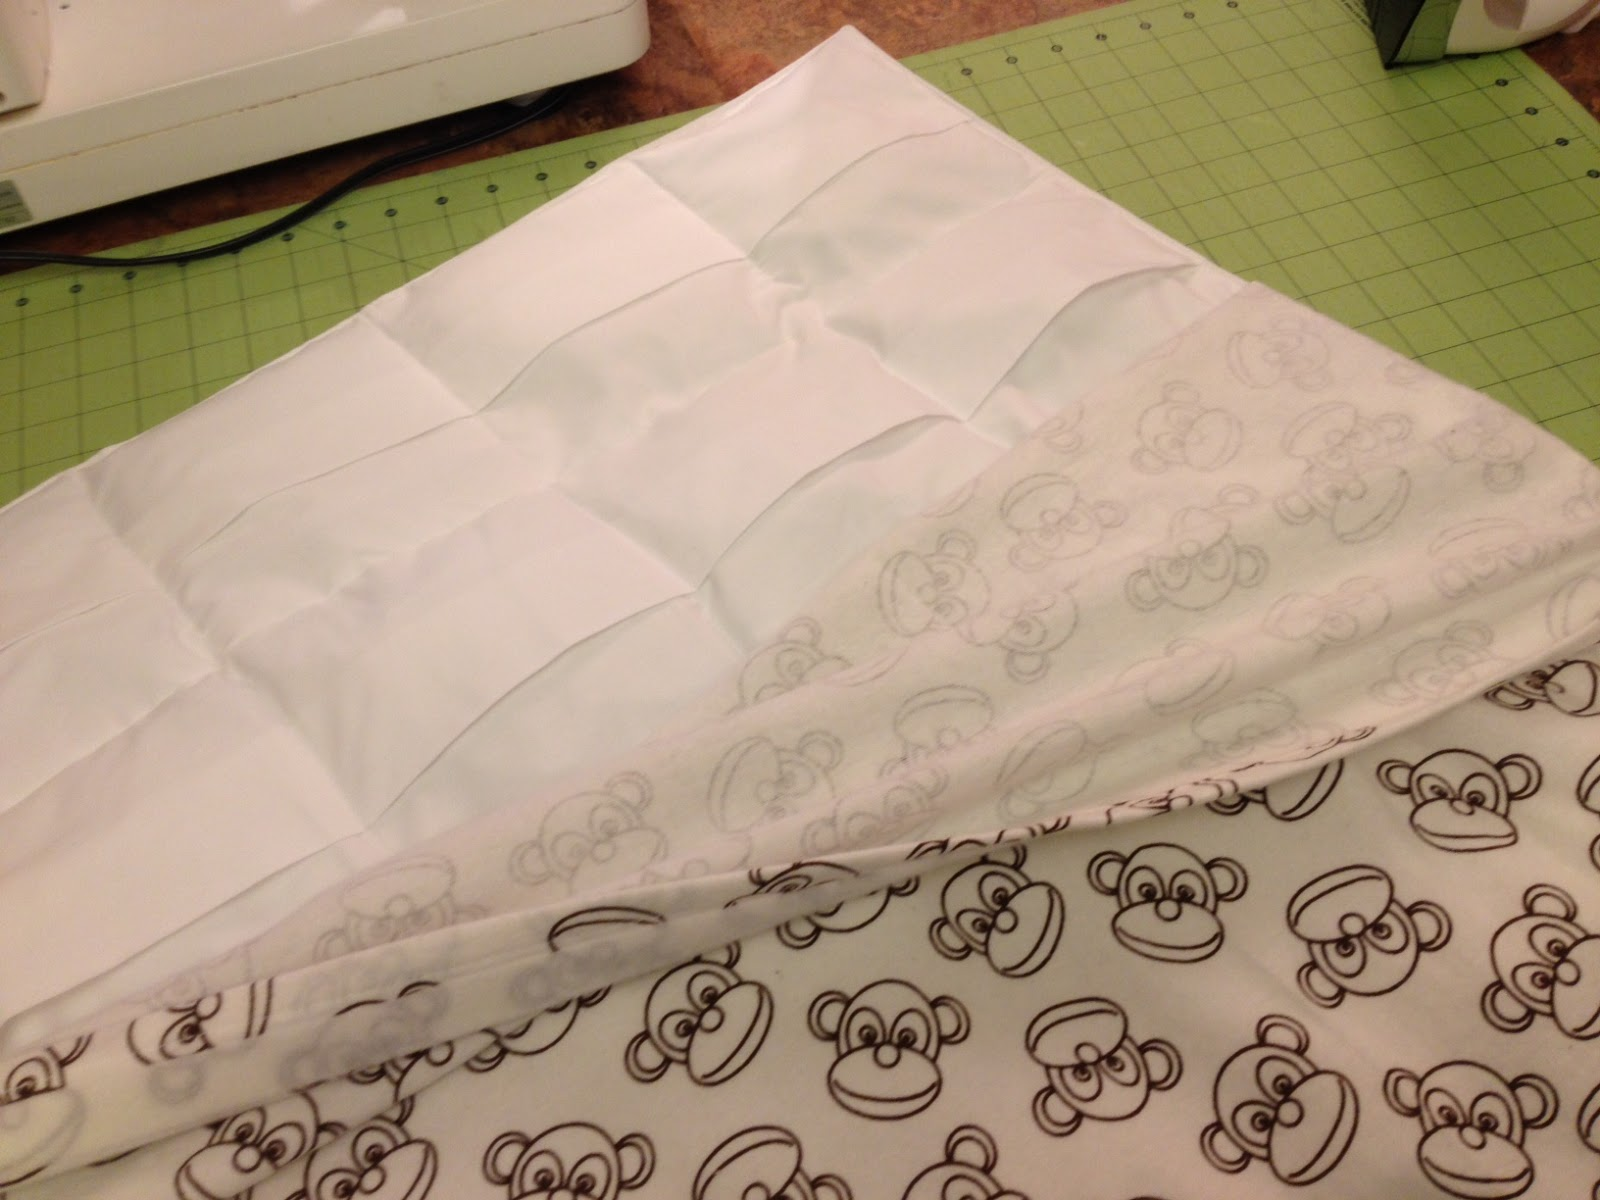 Confessions Of A Fabric Addict Weighted Blanket Tutorial